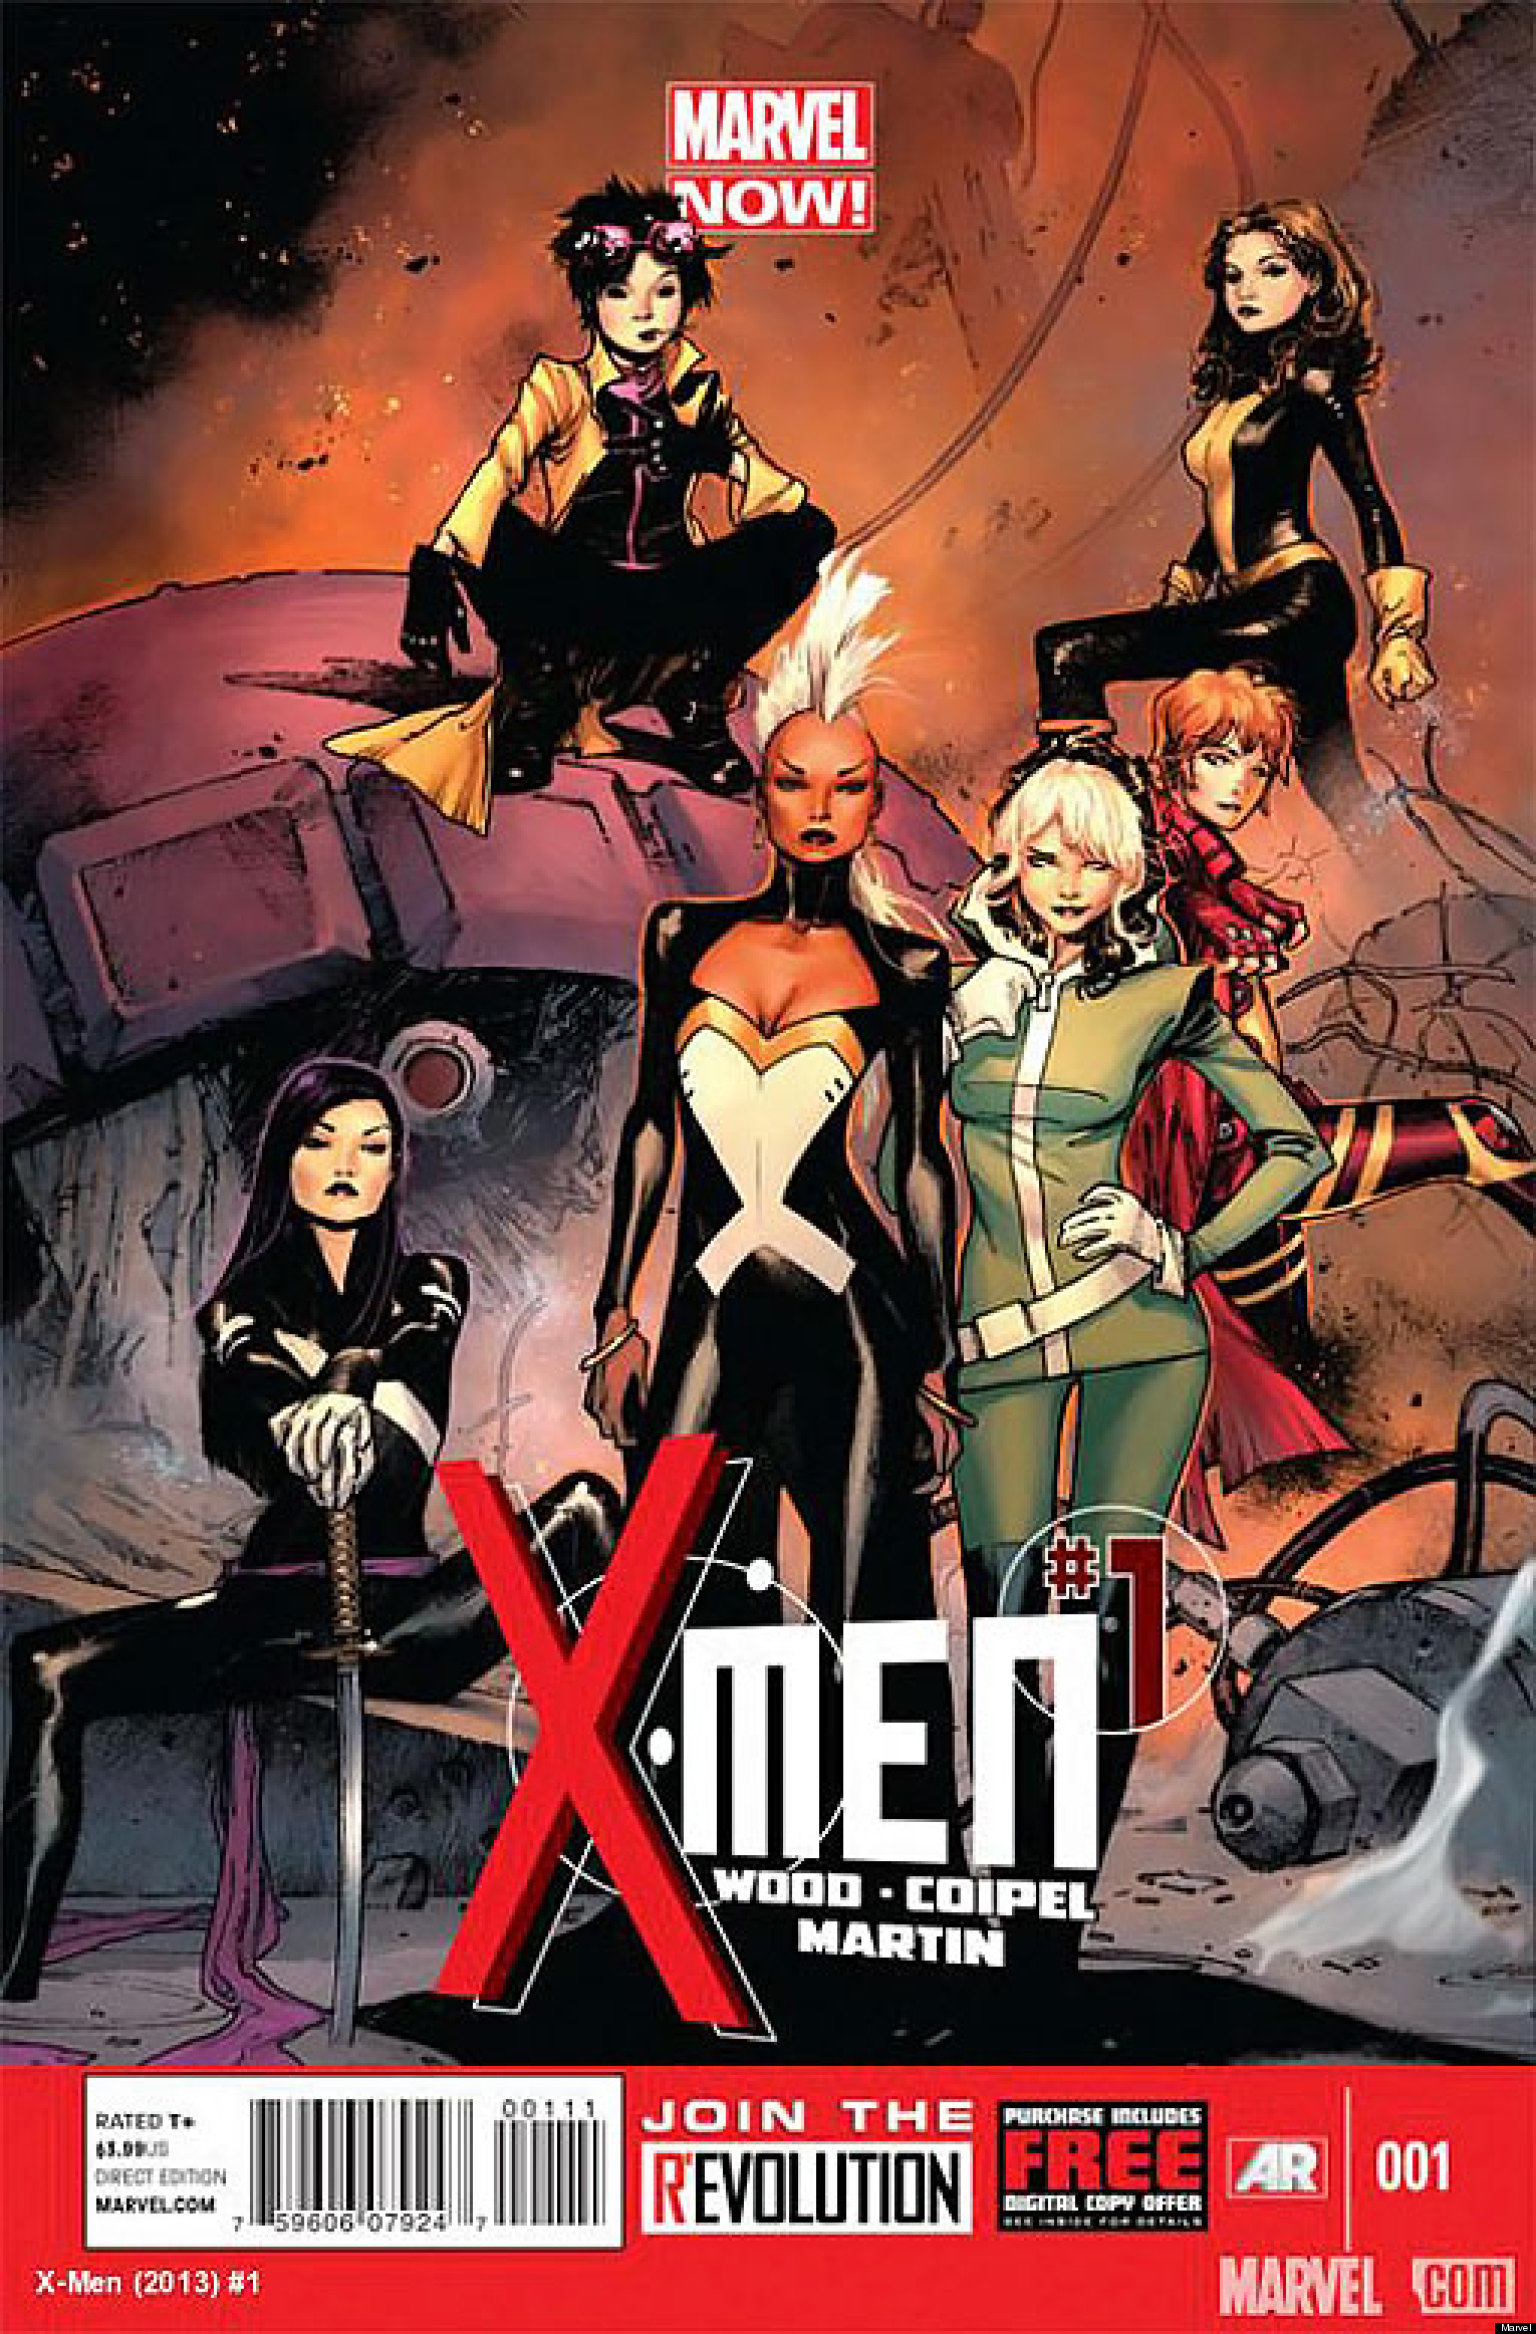 Gen x women seeking gen x men